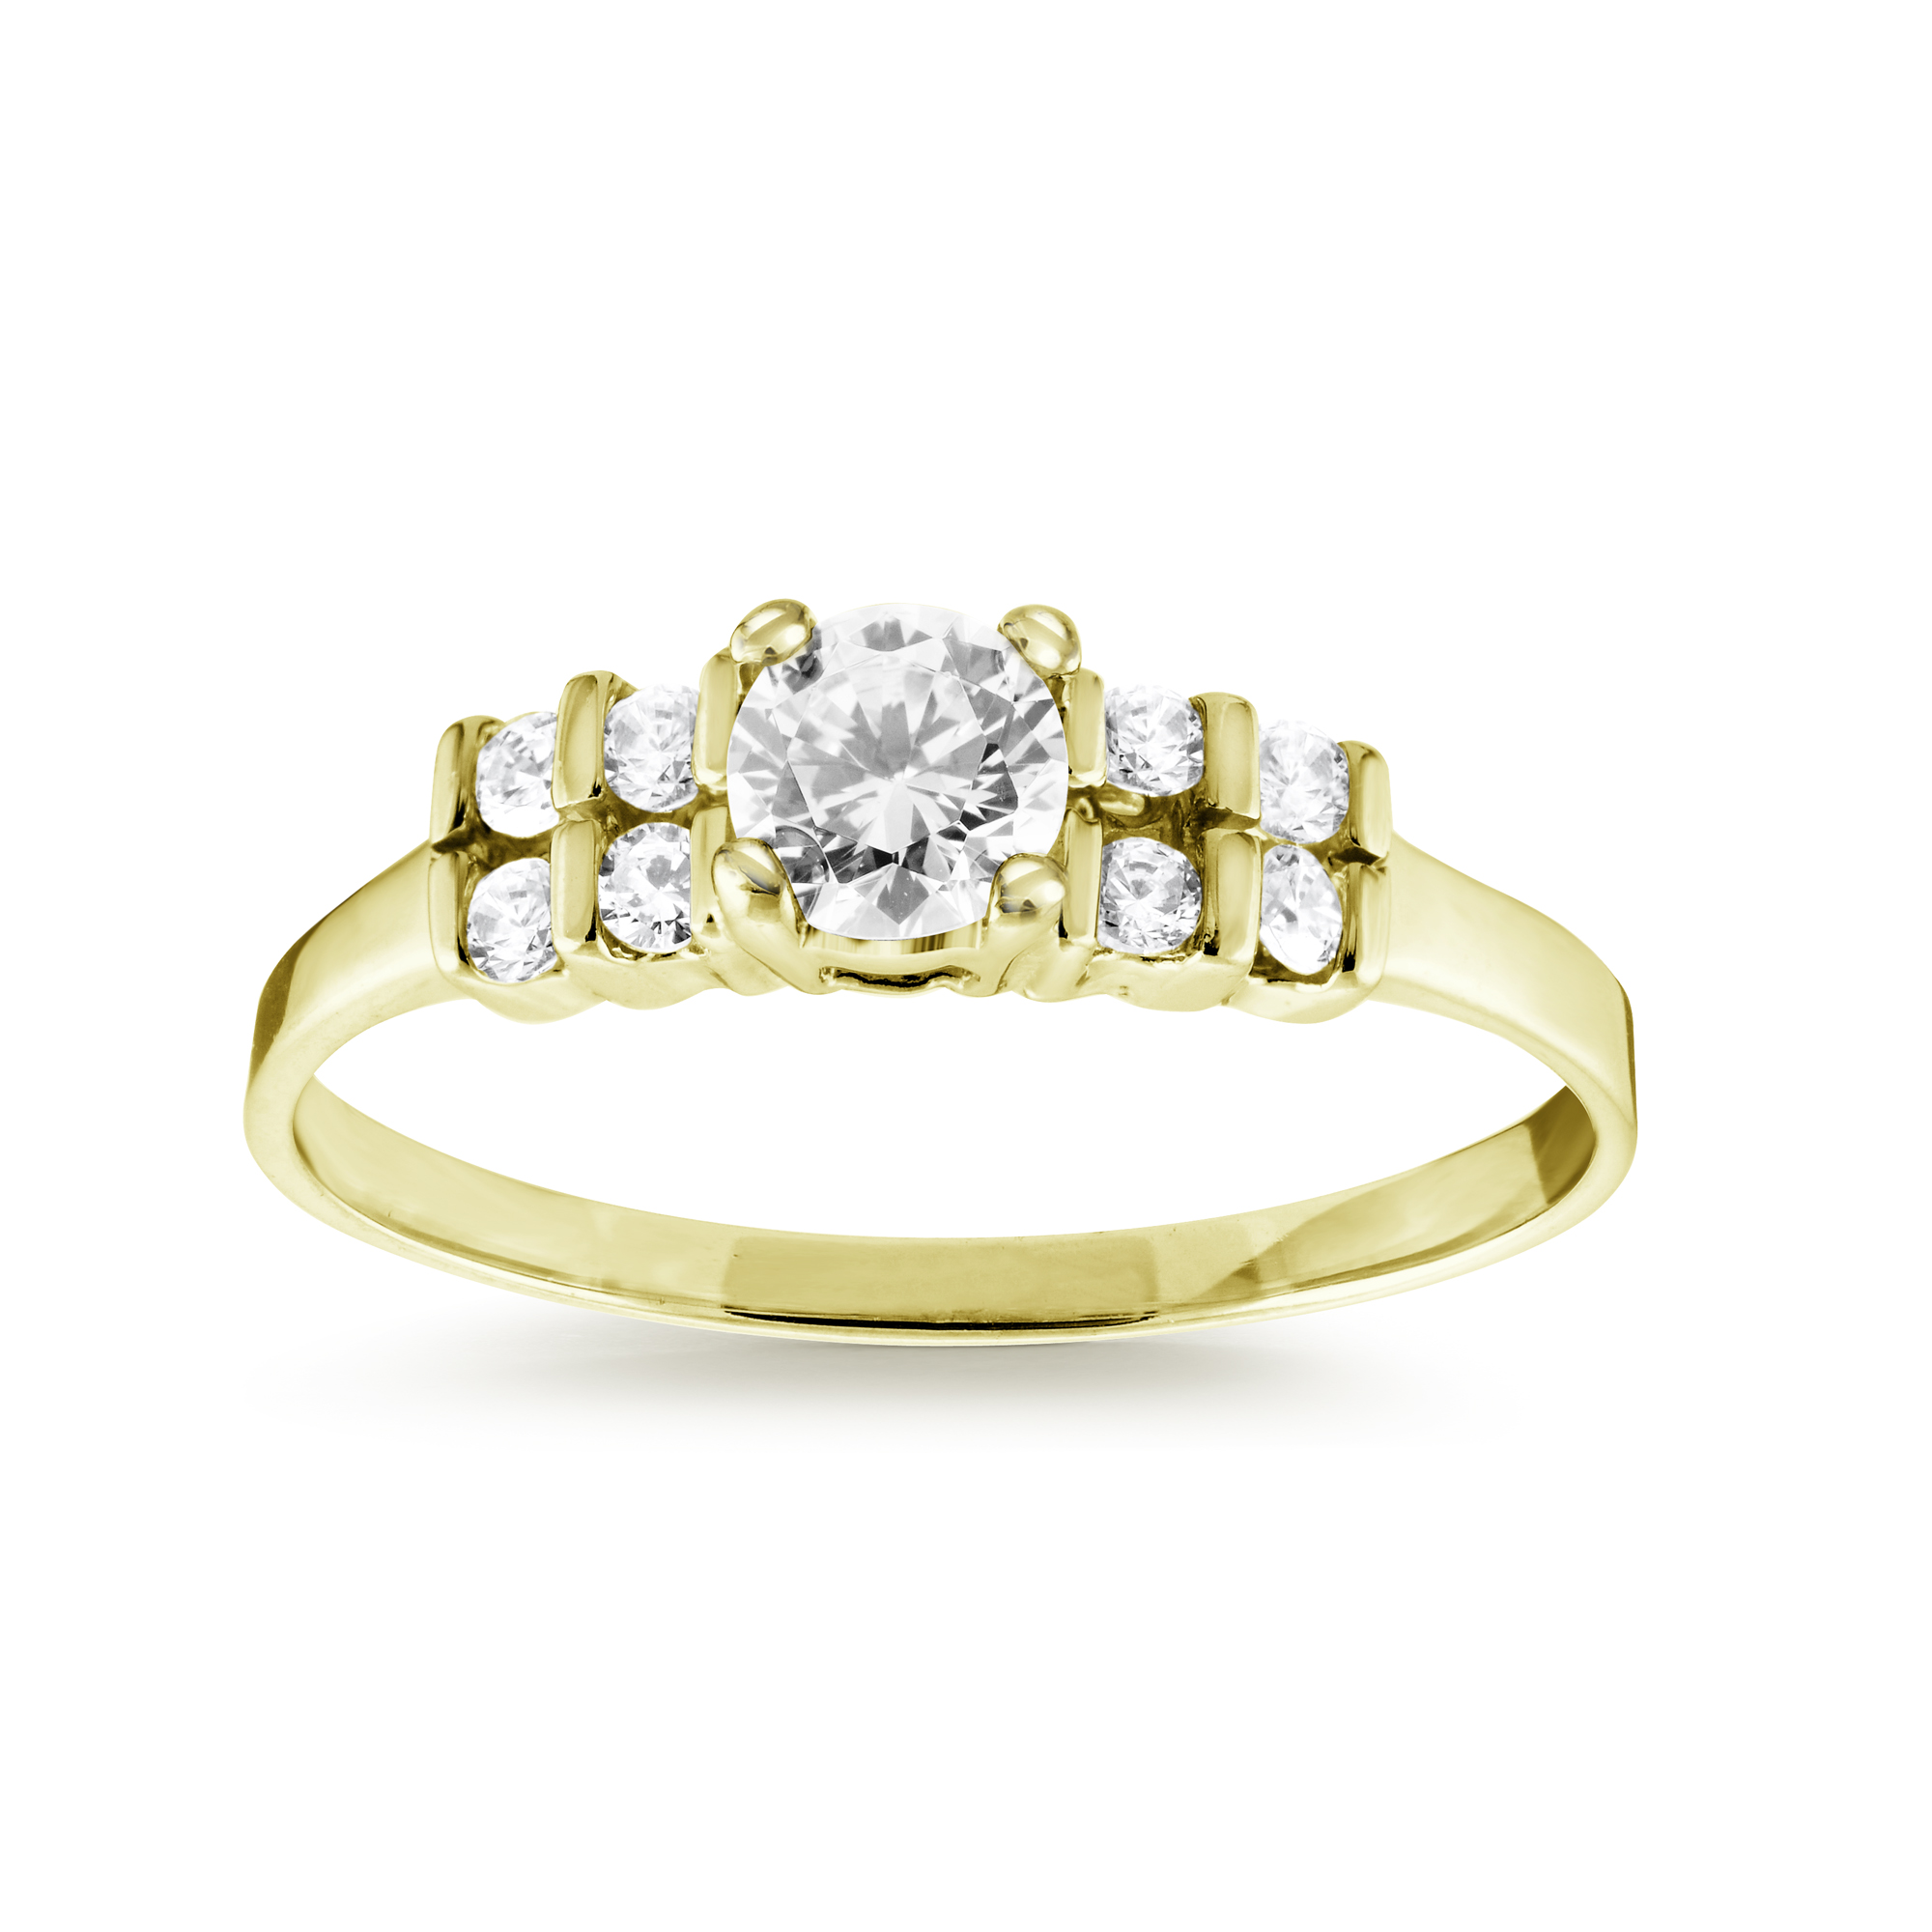 Ring with multiple cubic zirconia - 10K yellow Gold